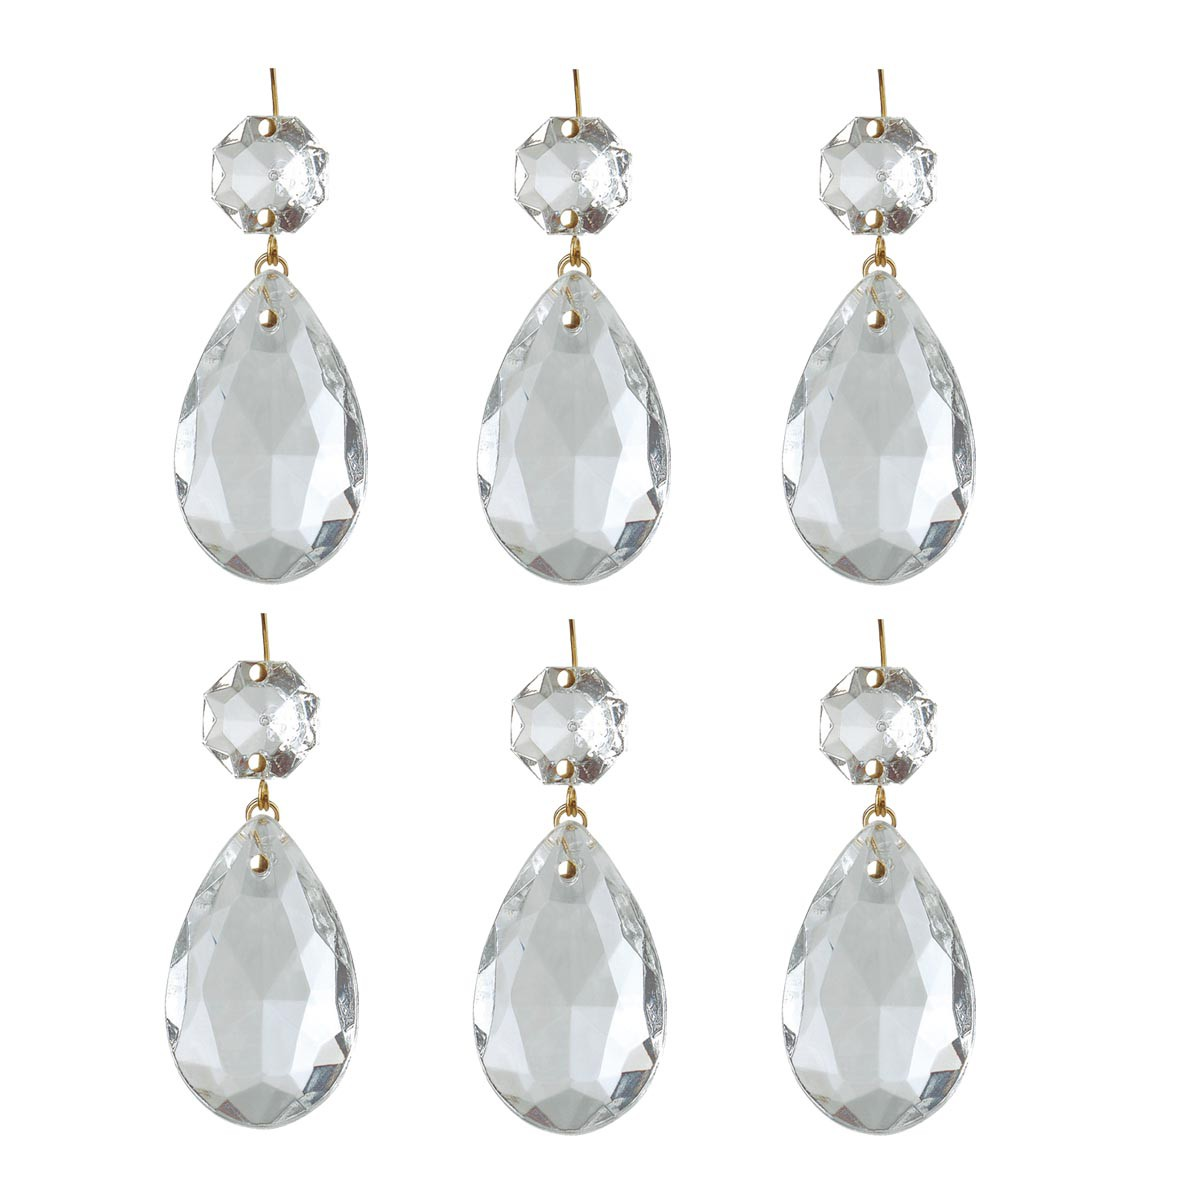 "6 Prisms Clear Glass Chandelier Bobeche Pendant 1.5"" by The Renovator's Supply"